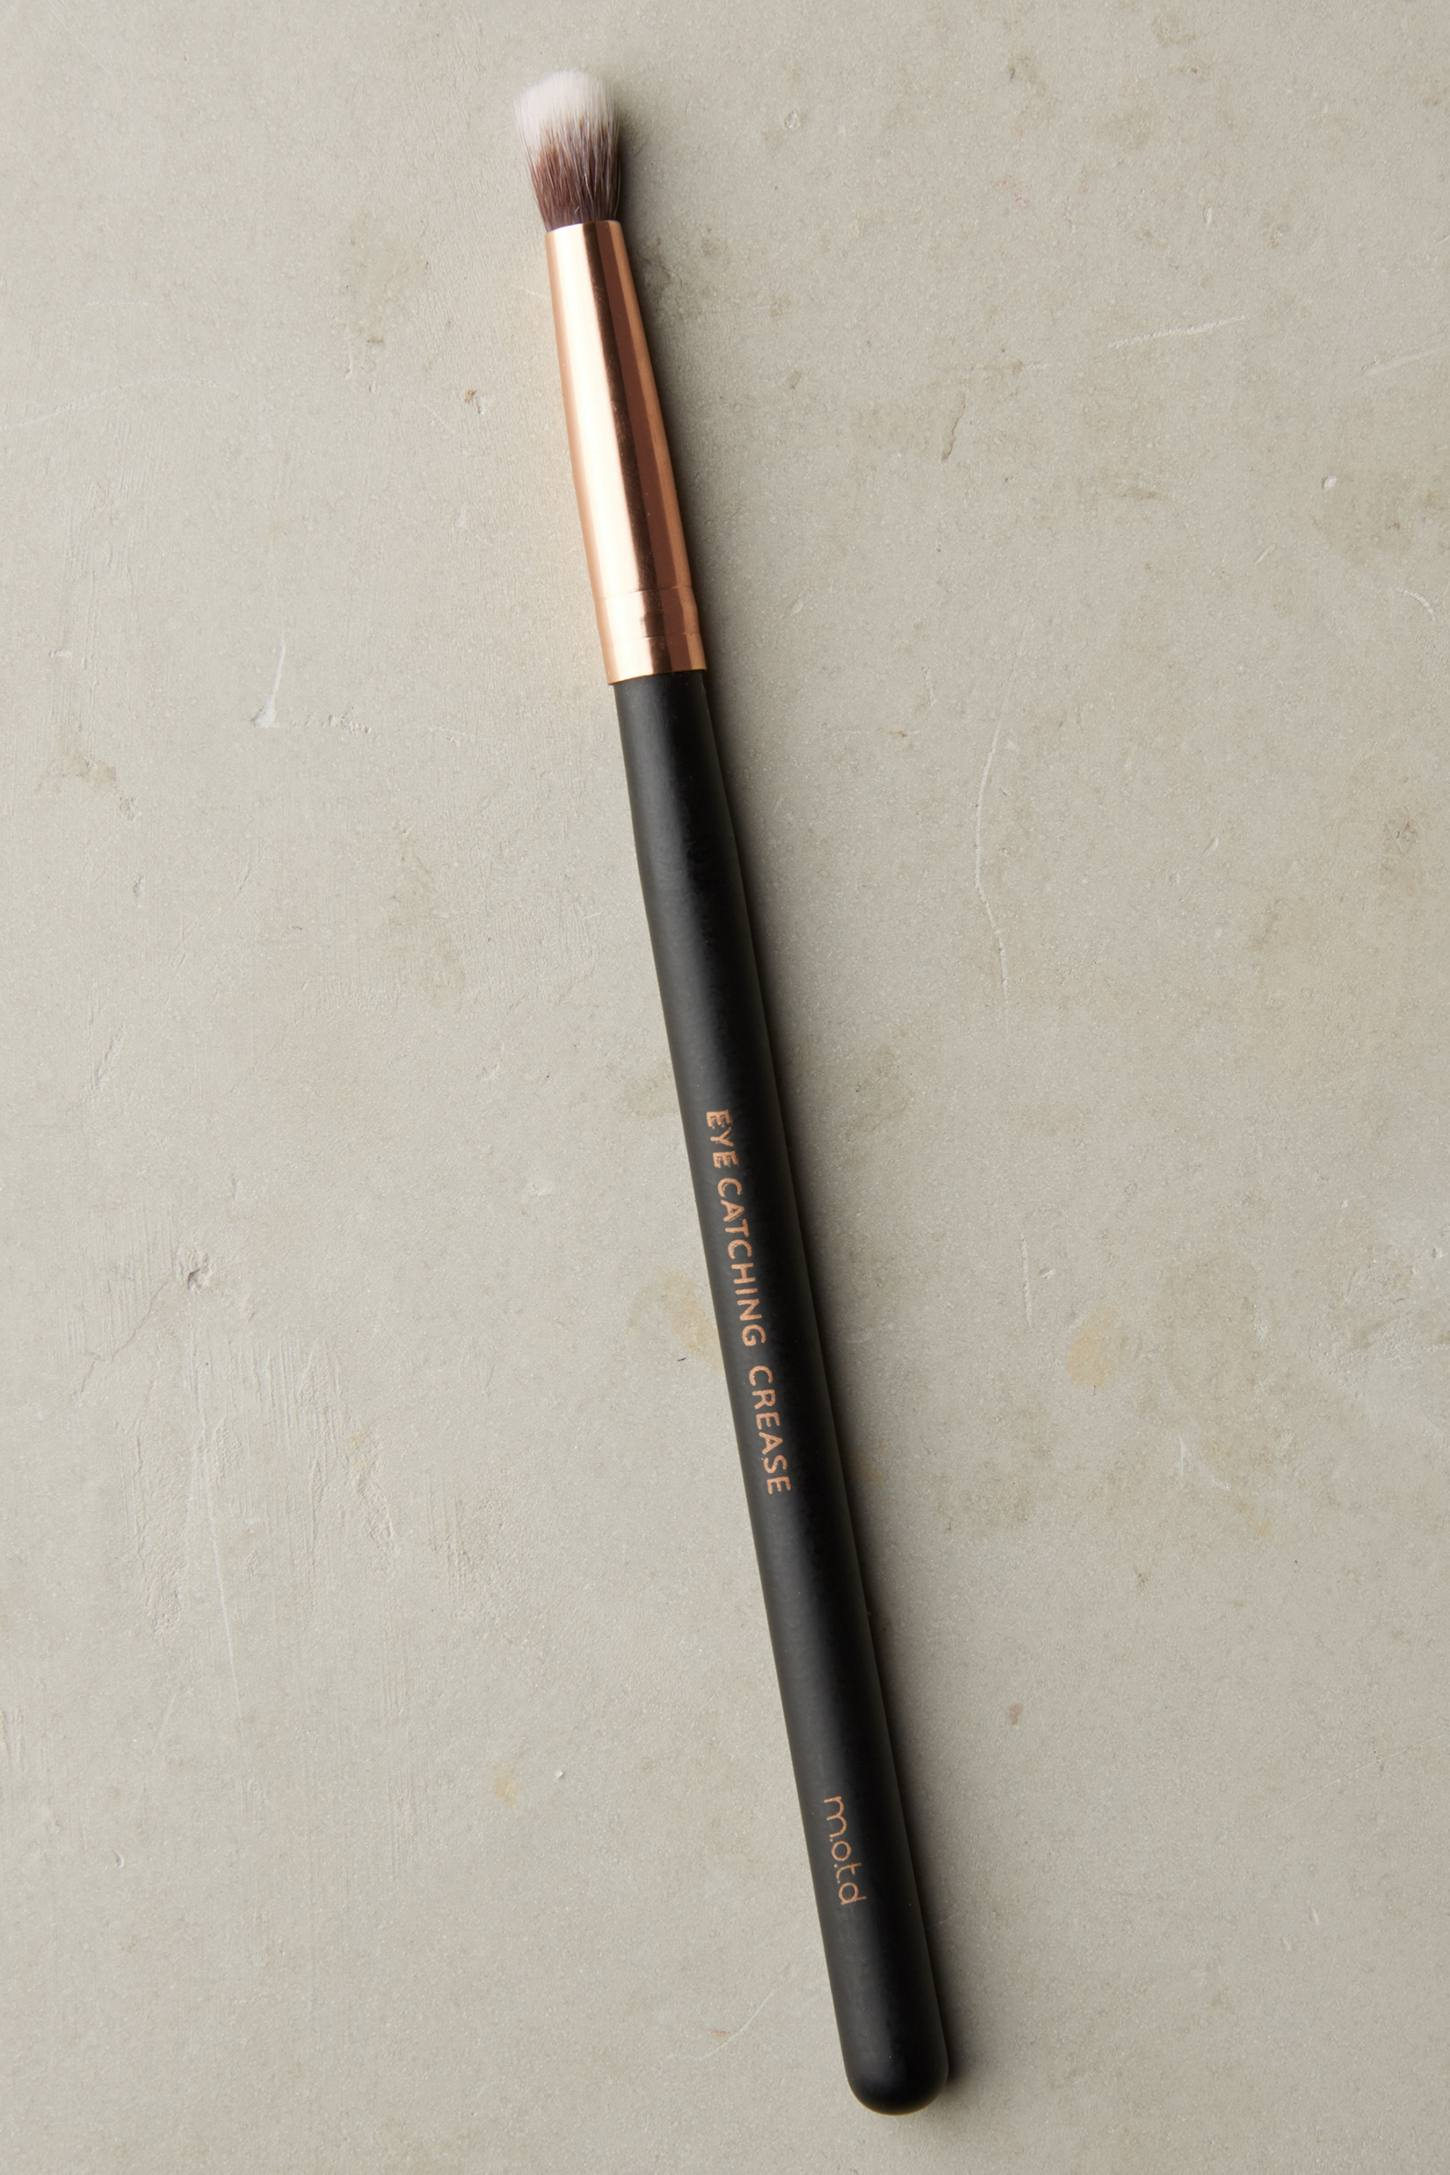 Slide View: 1: M.O.T.D Eye Catching Crease Brush